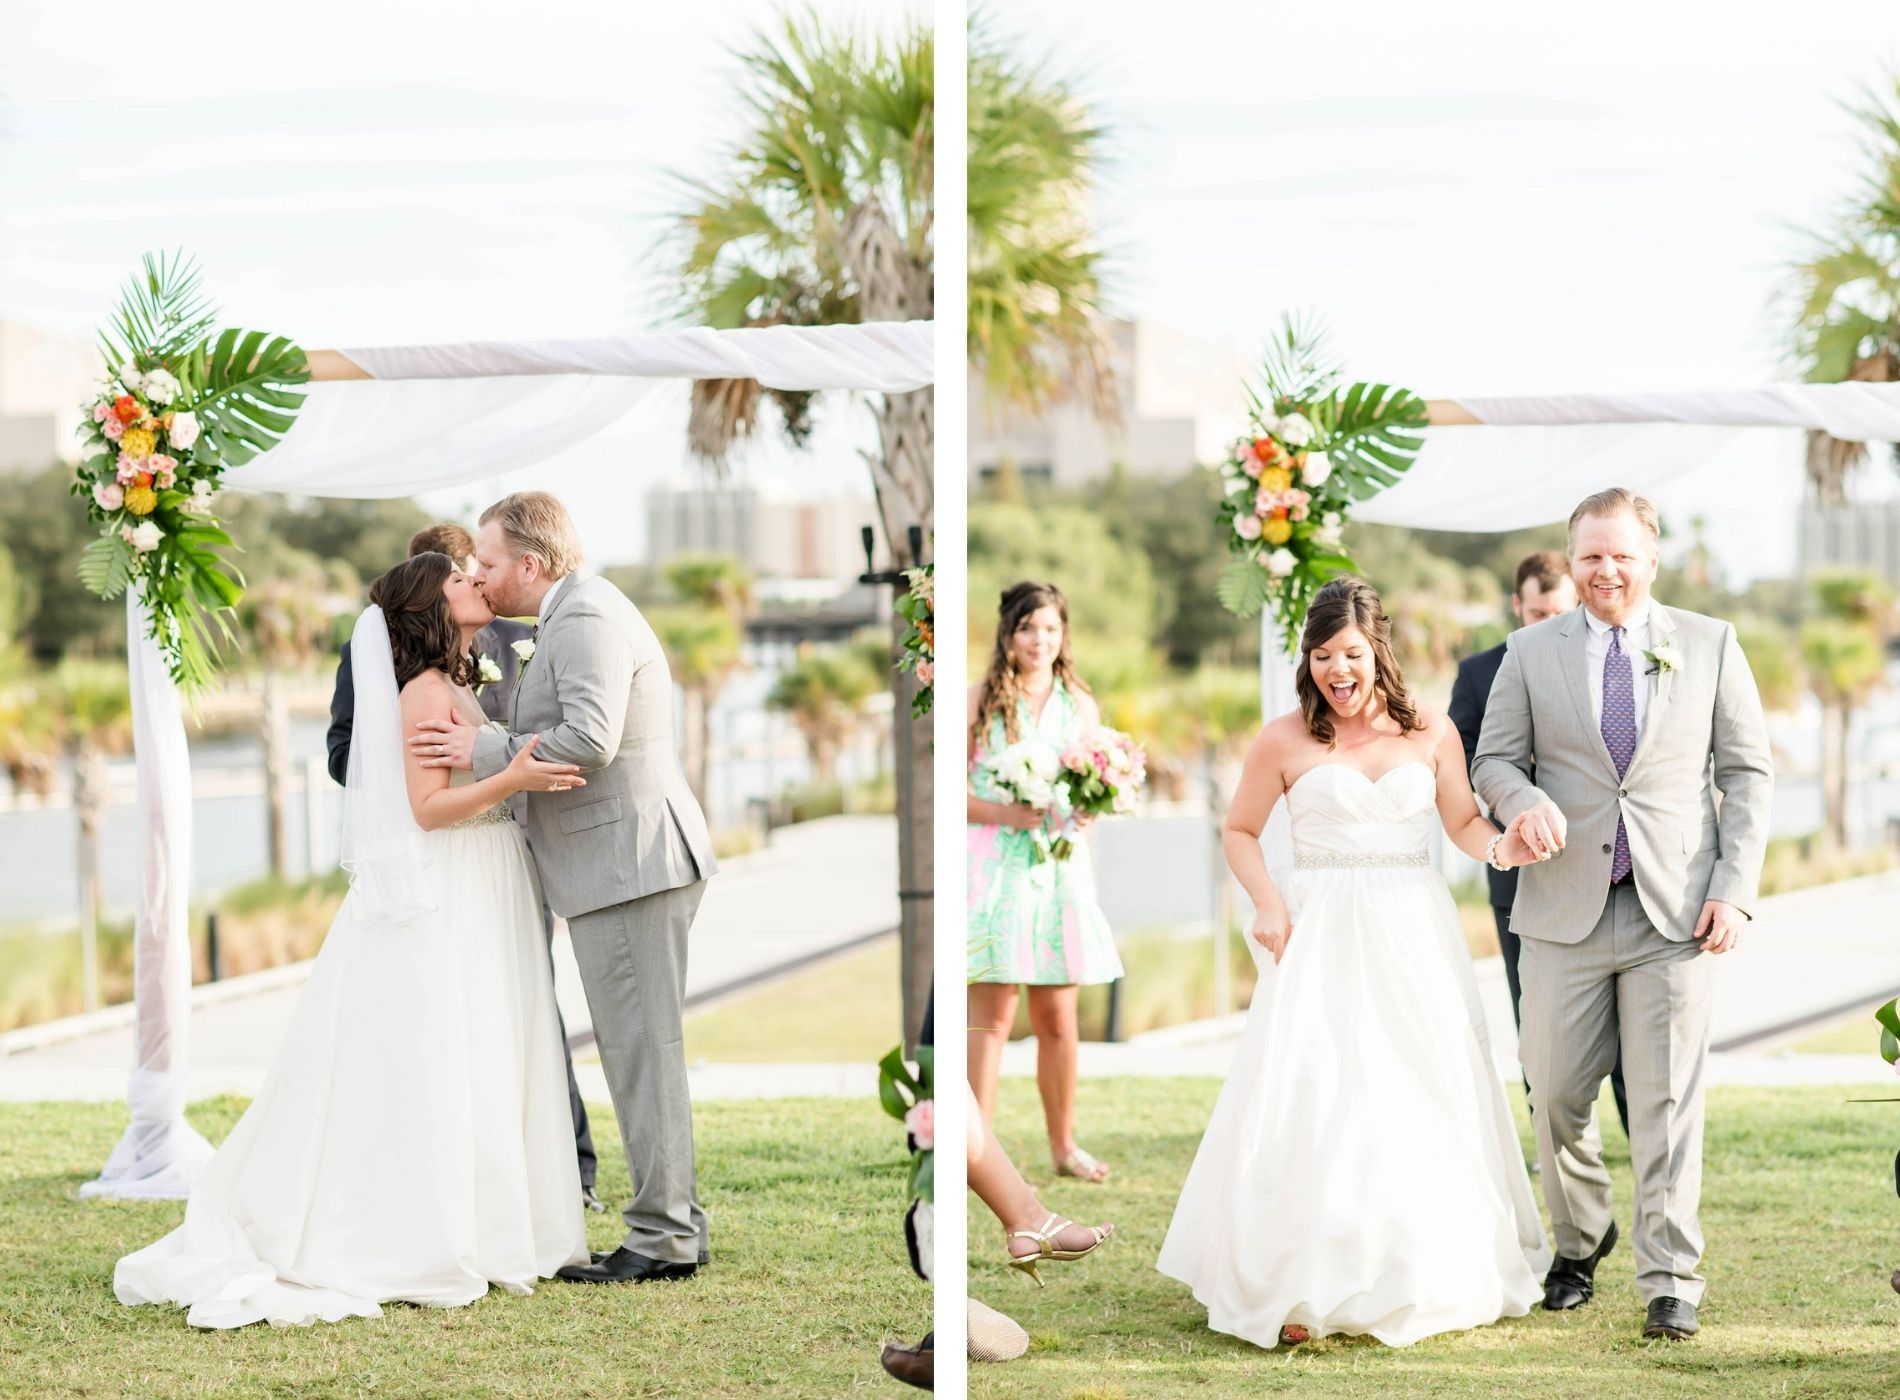 Florida Tropical Bride and Groom Exchanging First Kiss During Wedding Ceremony, Arch with White Linens and Monstera Leaves, Pink, Yellow and White Floral Arrangements | Tampa Bay Wedding Planner Coastal Coordinating | Wedding Hair and Makeup Adore Bridal